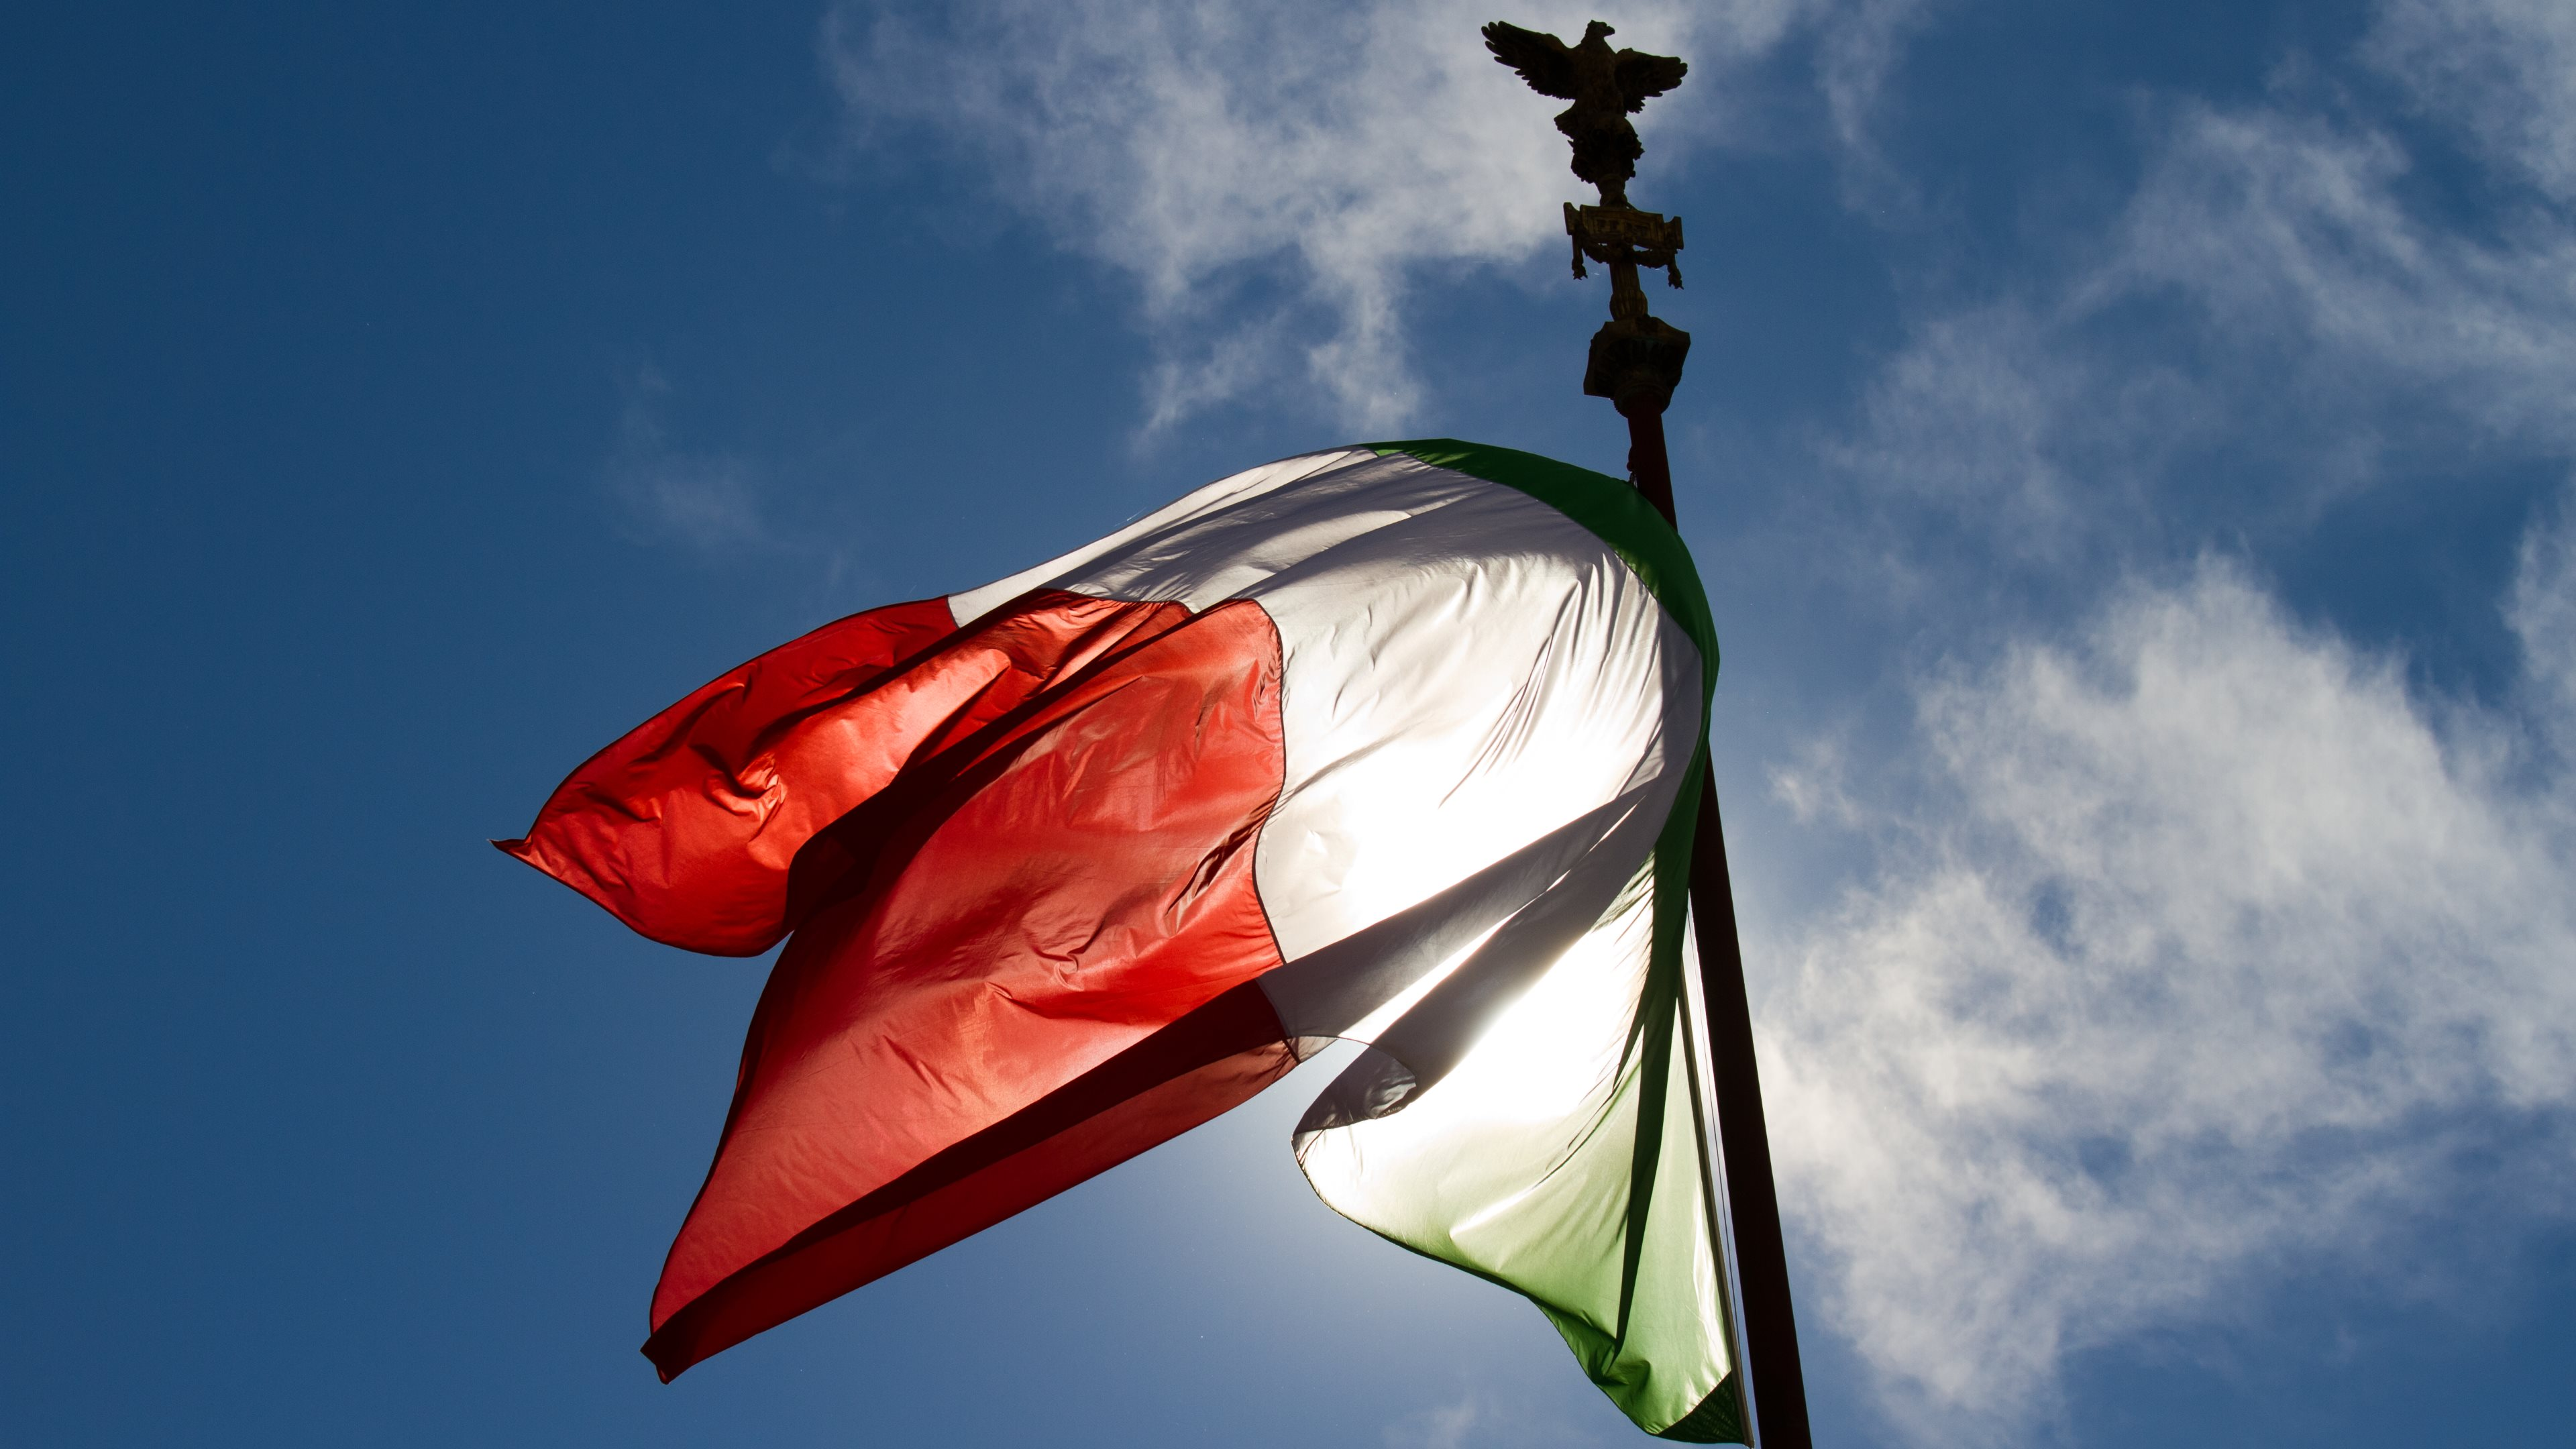 italian flag wallpapers in hd 4k and wide sizes